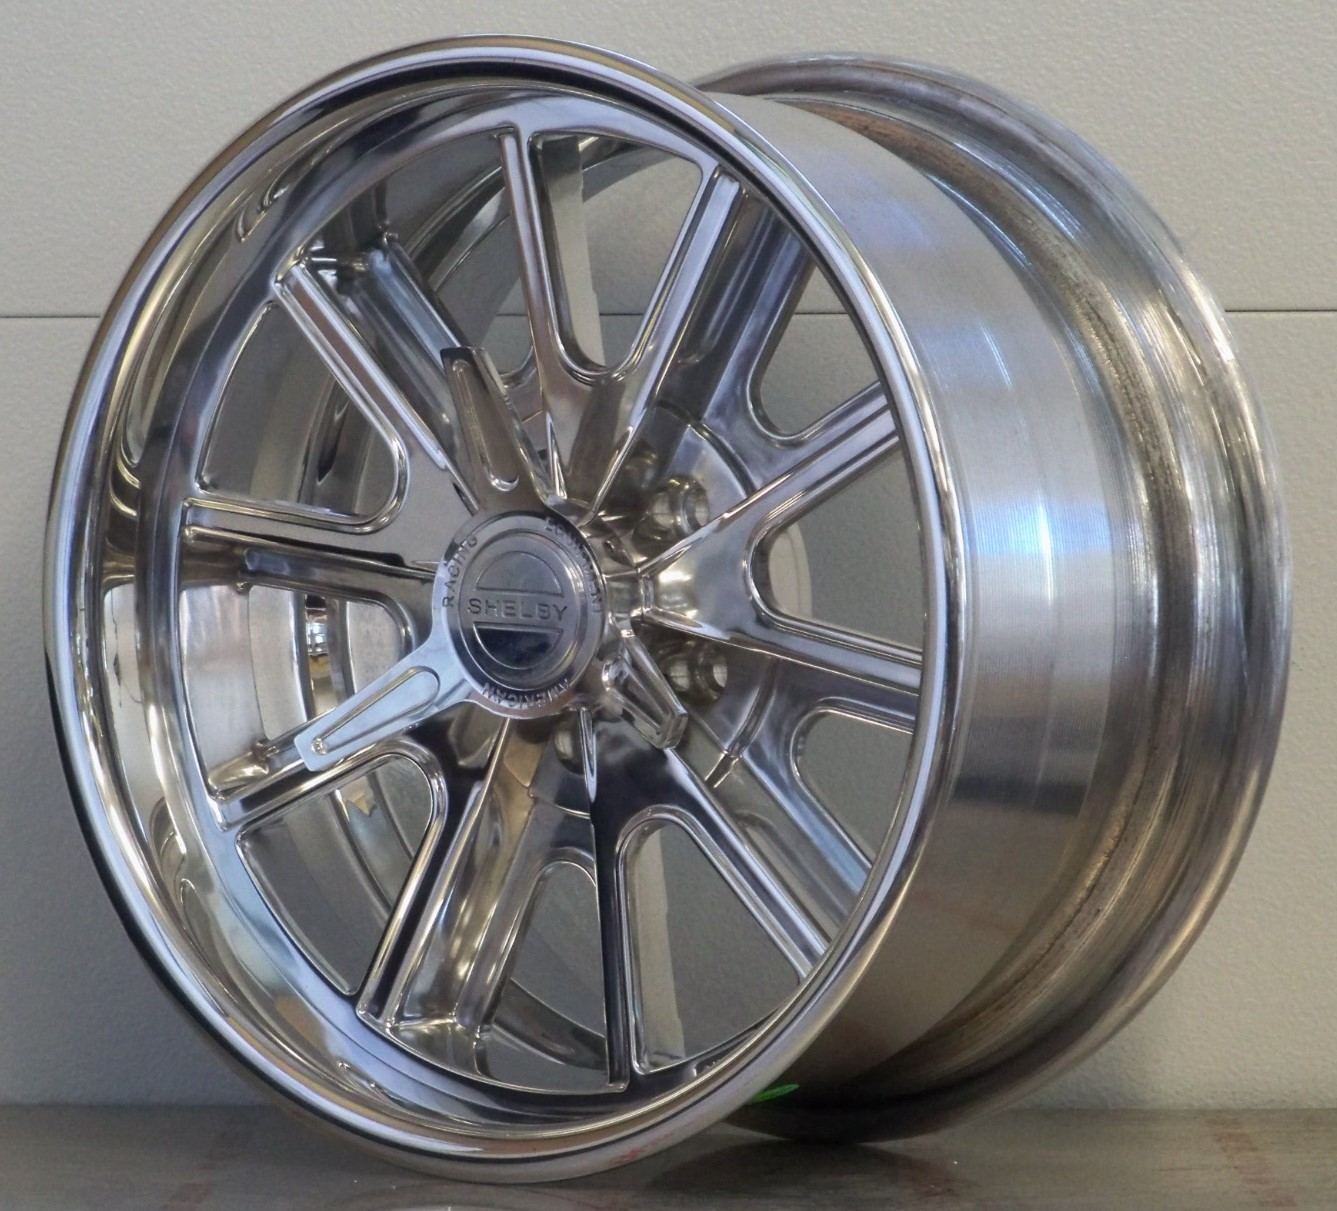 VN407SP Shelby fully polished / spinners (price shown per wheel